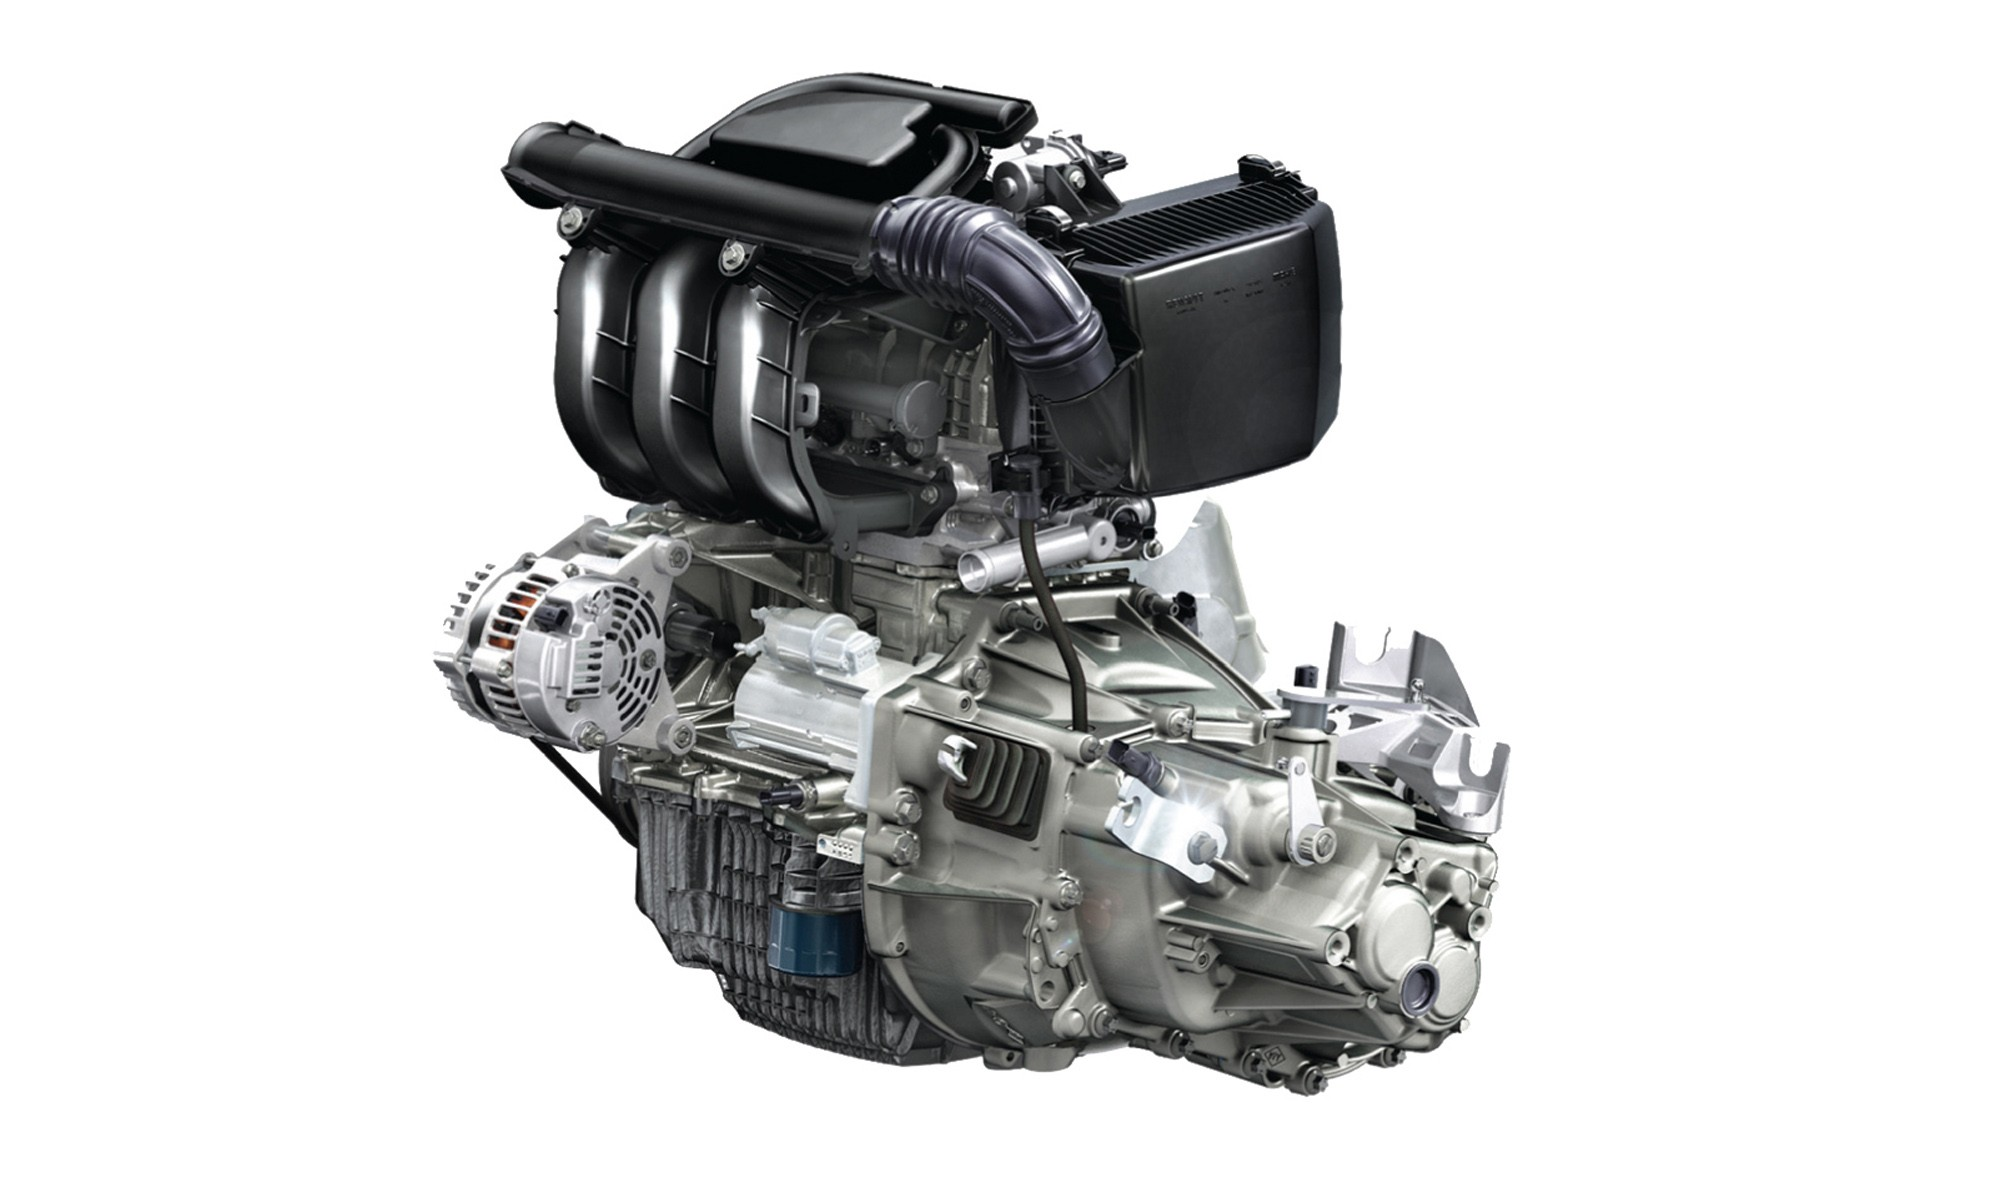 Renault Kwid ABS engine